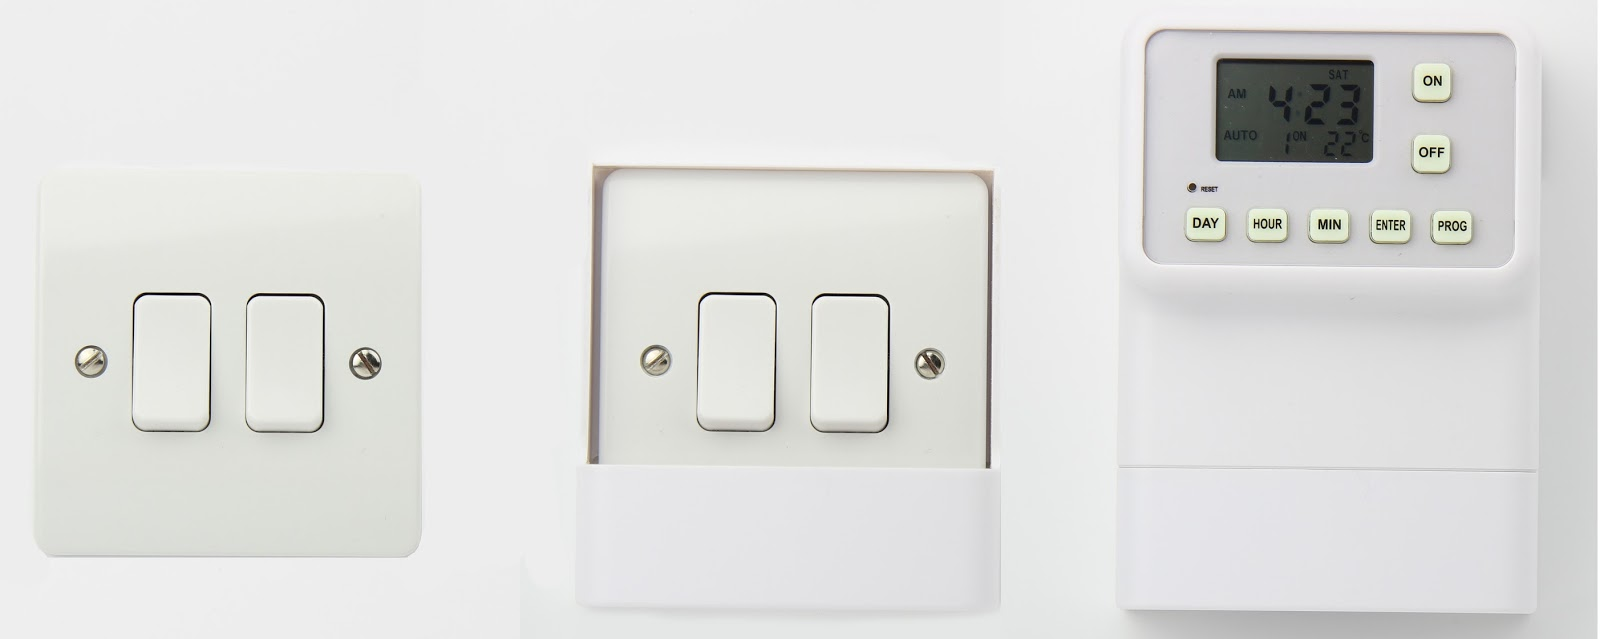 Review: Light Switch Timer Security Device